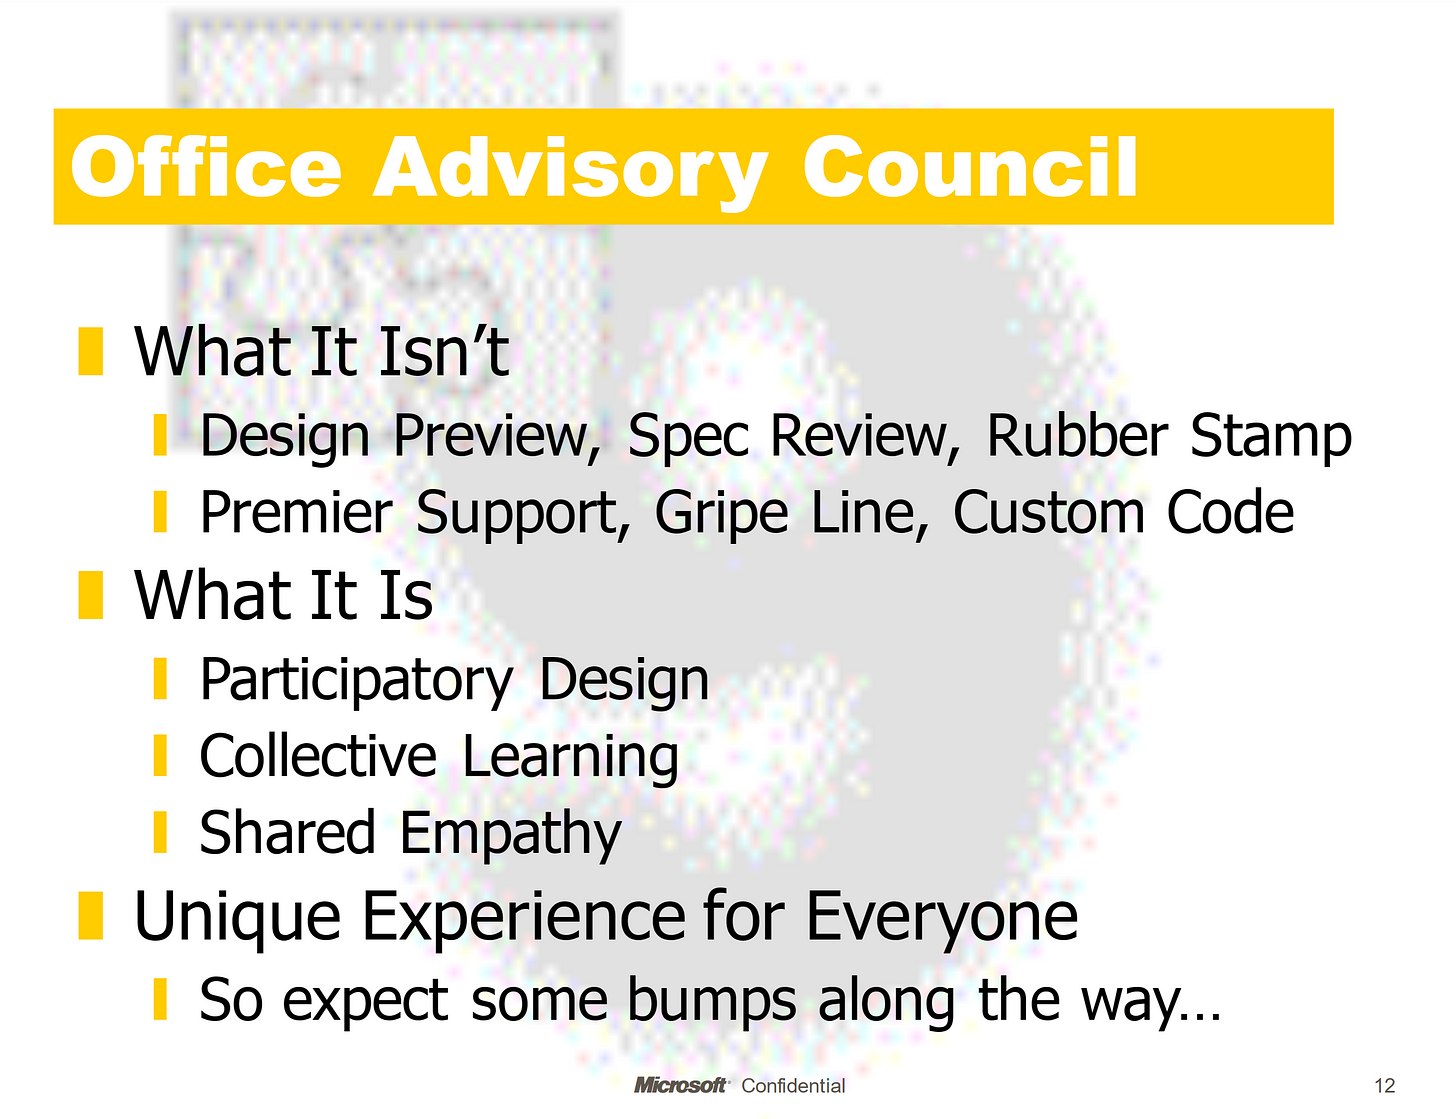 Office Advisory Councul: What It Isn'tDesign Preview,  Spec Review, Rubber StampPremier Support, Gripe Line, Custom CodeWhat It IsParticipatory  DesignCollective  LearningShared EmpathyUnique Experience for EveryoneSo expect some bumps along the way...